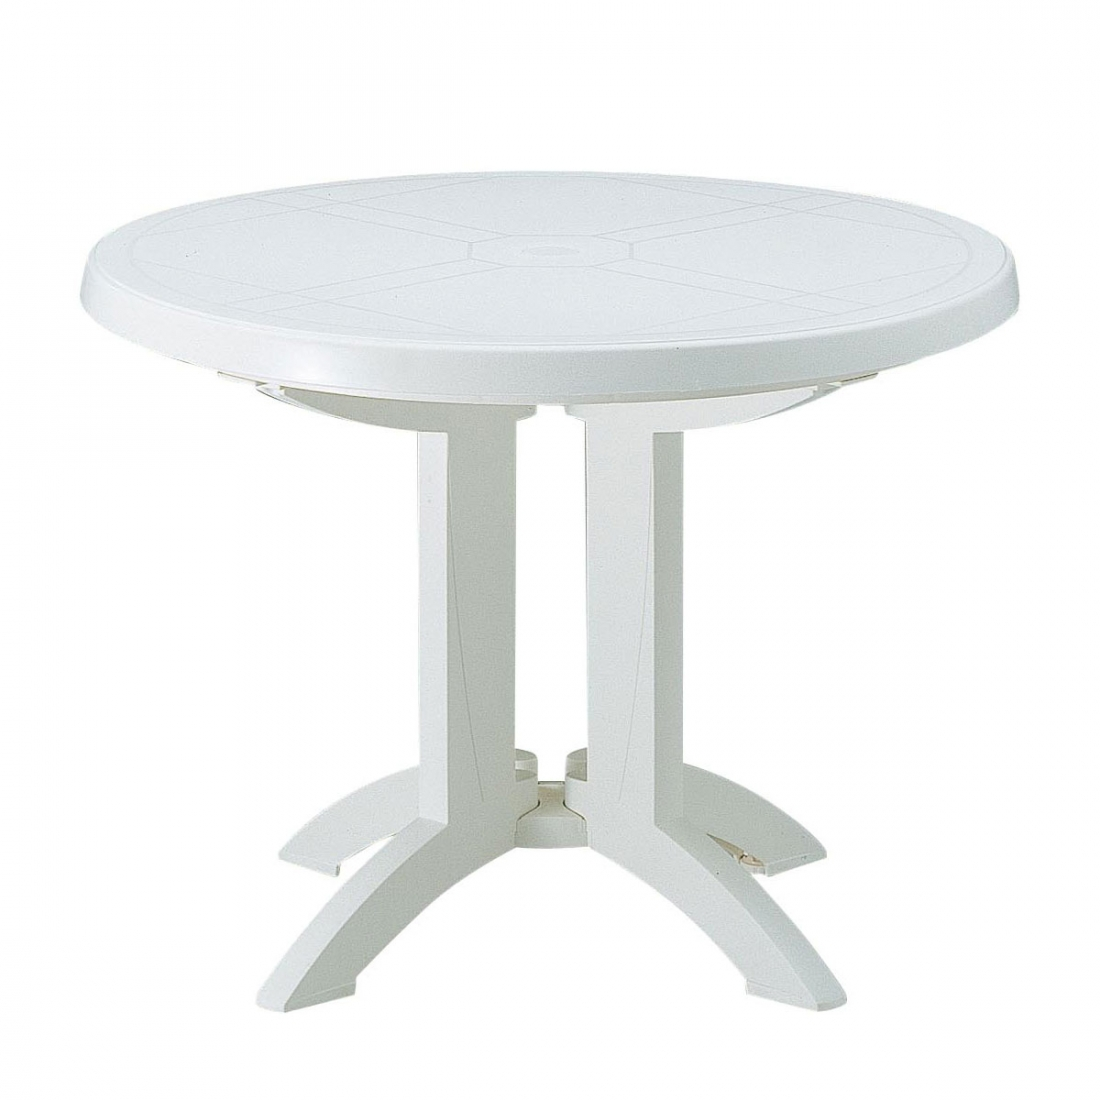 Table ronde de jardin vega grosfillex - Table de jardin ronde intermarche ...